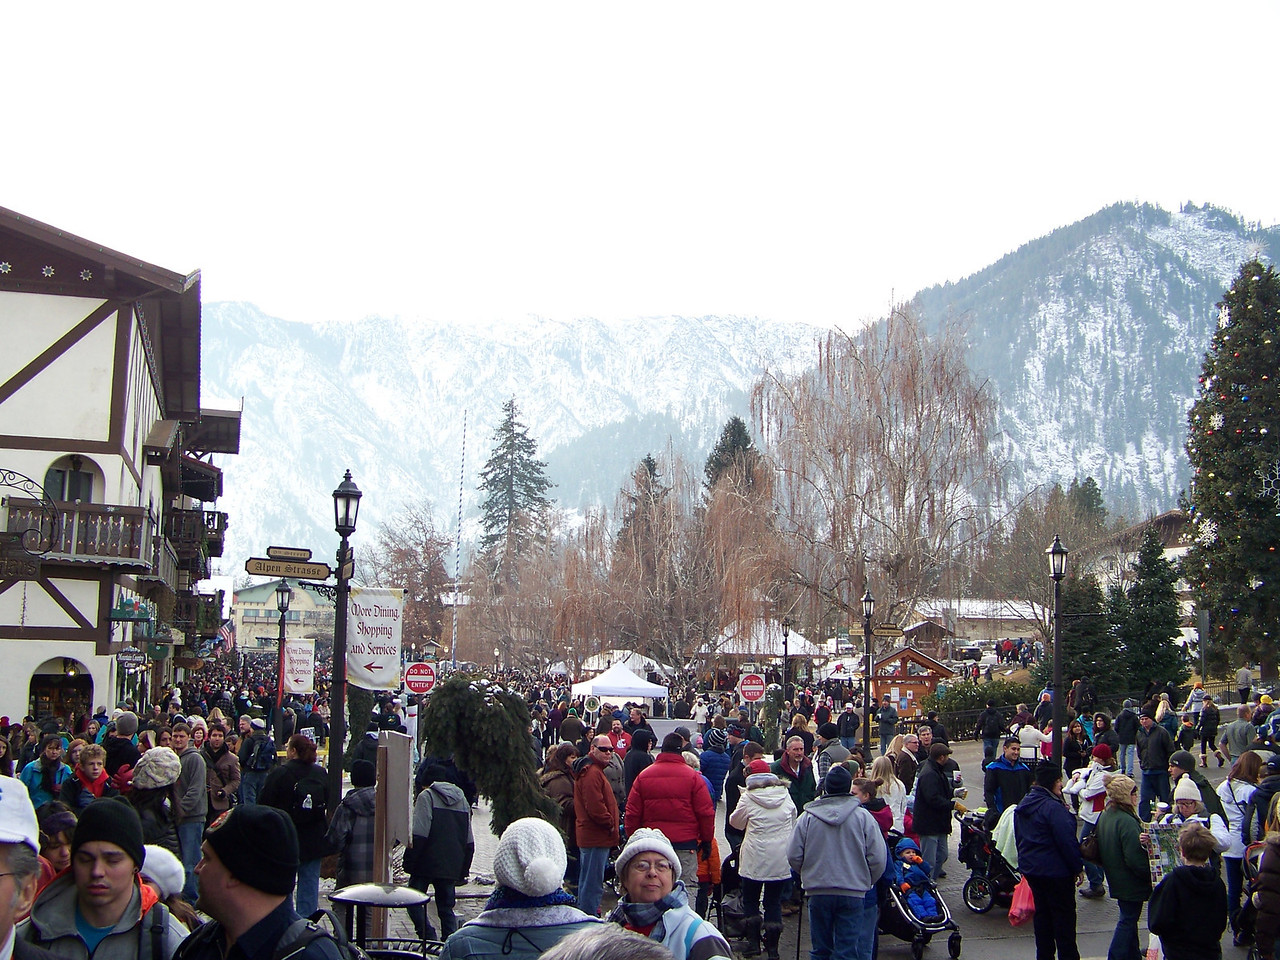 """Despite the lack of snow, tons of people still came here for the shopping, dining, and the Christmas Lighting Ceremony that they do every weekend during December.  This is looking toward Front Street Park, which will be the focus of the festivities after dark. [Leavenworth, WA - December 2013 - <b><a target=""""_new"""" href=""""http://youtu.be/NqCqDCOY_tc"""">Watch my video here</a></b>]"""